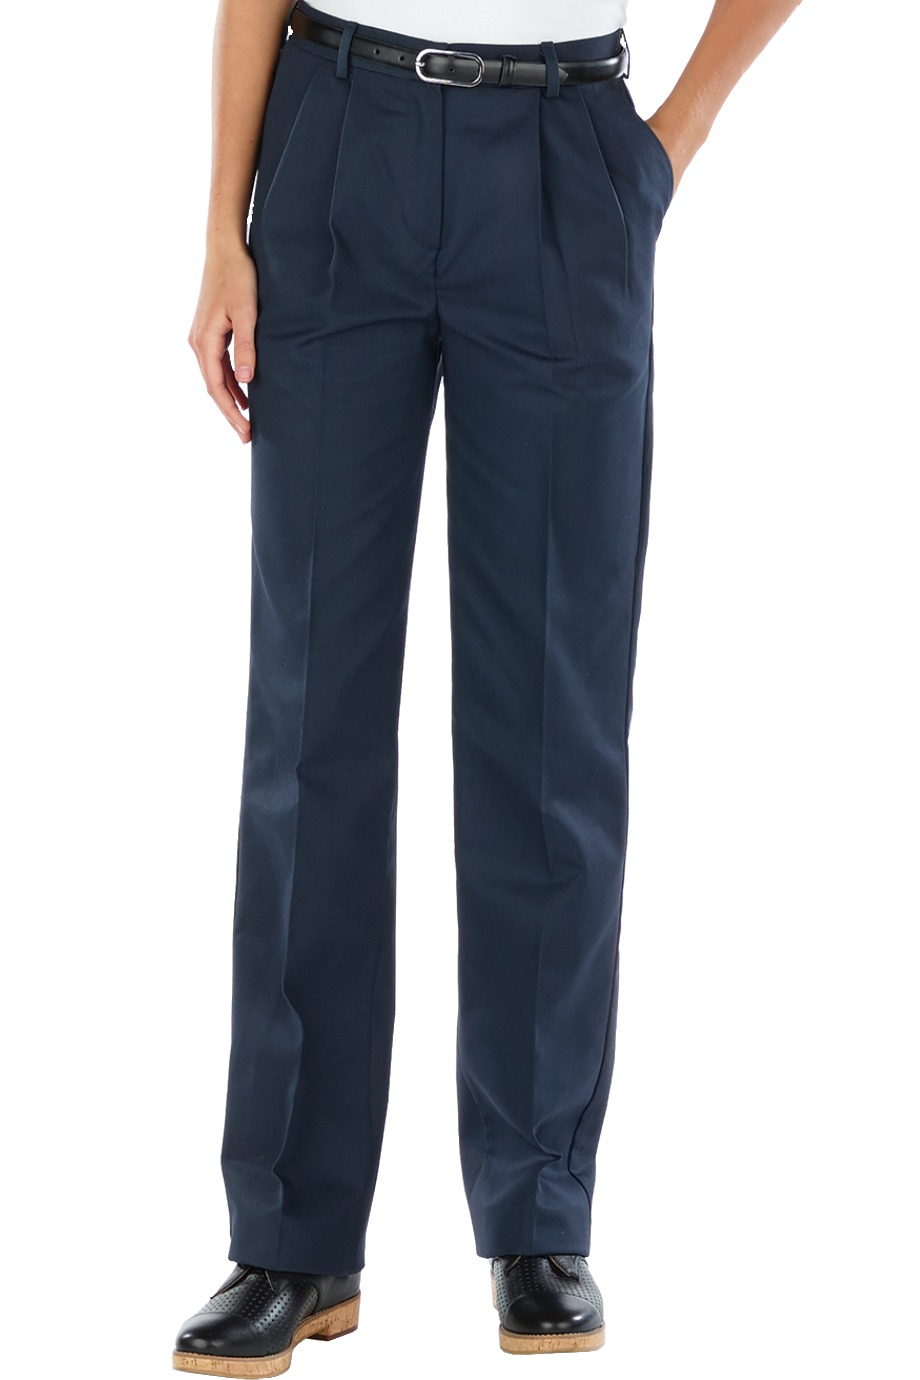 1ff06e33de8 edwards-garment-business-casual-pleated-front-chino-pant-38.jpg